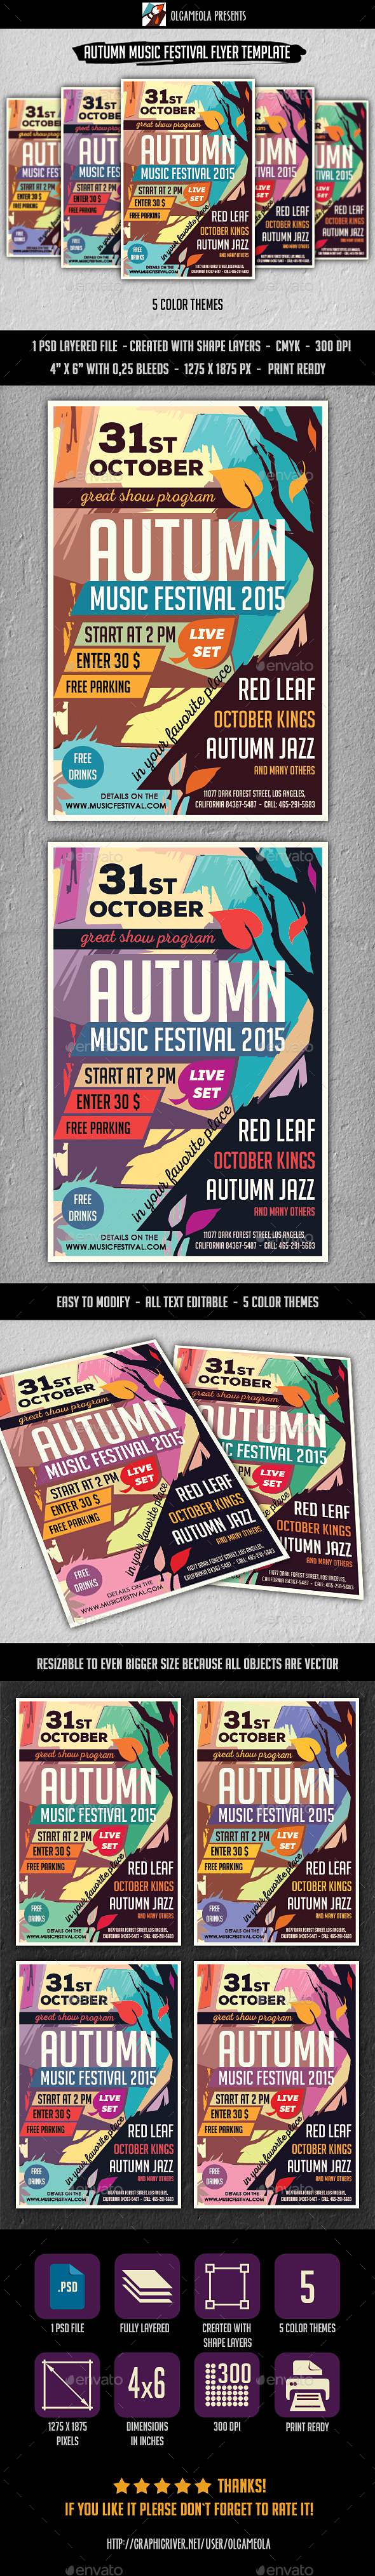 Autumn Music Festival Flyer Template